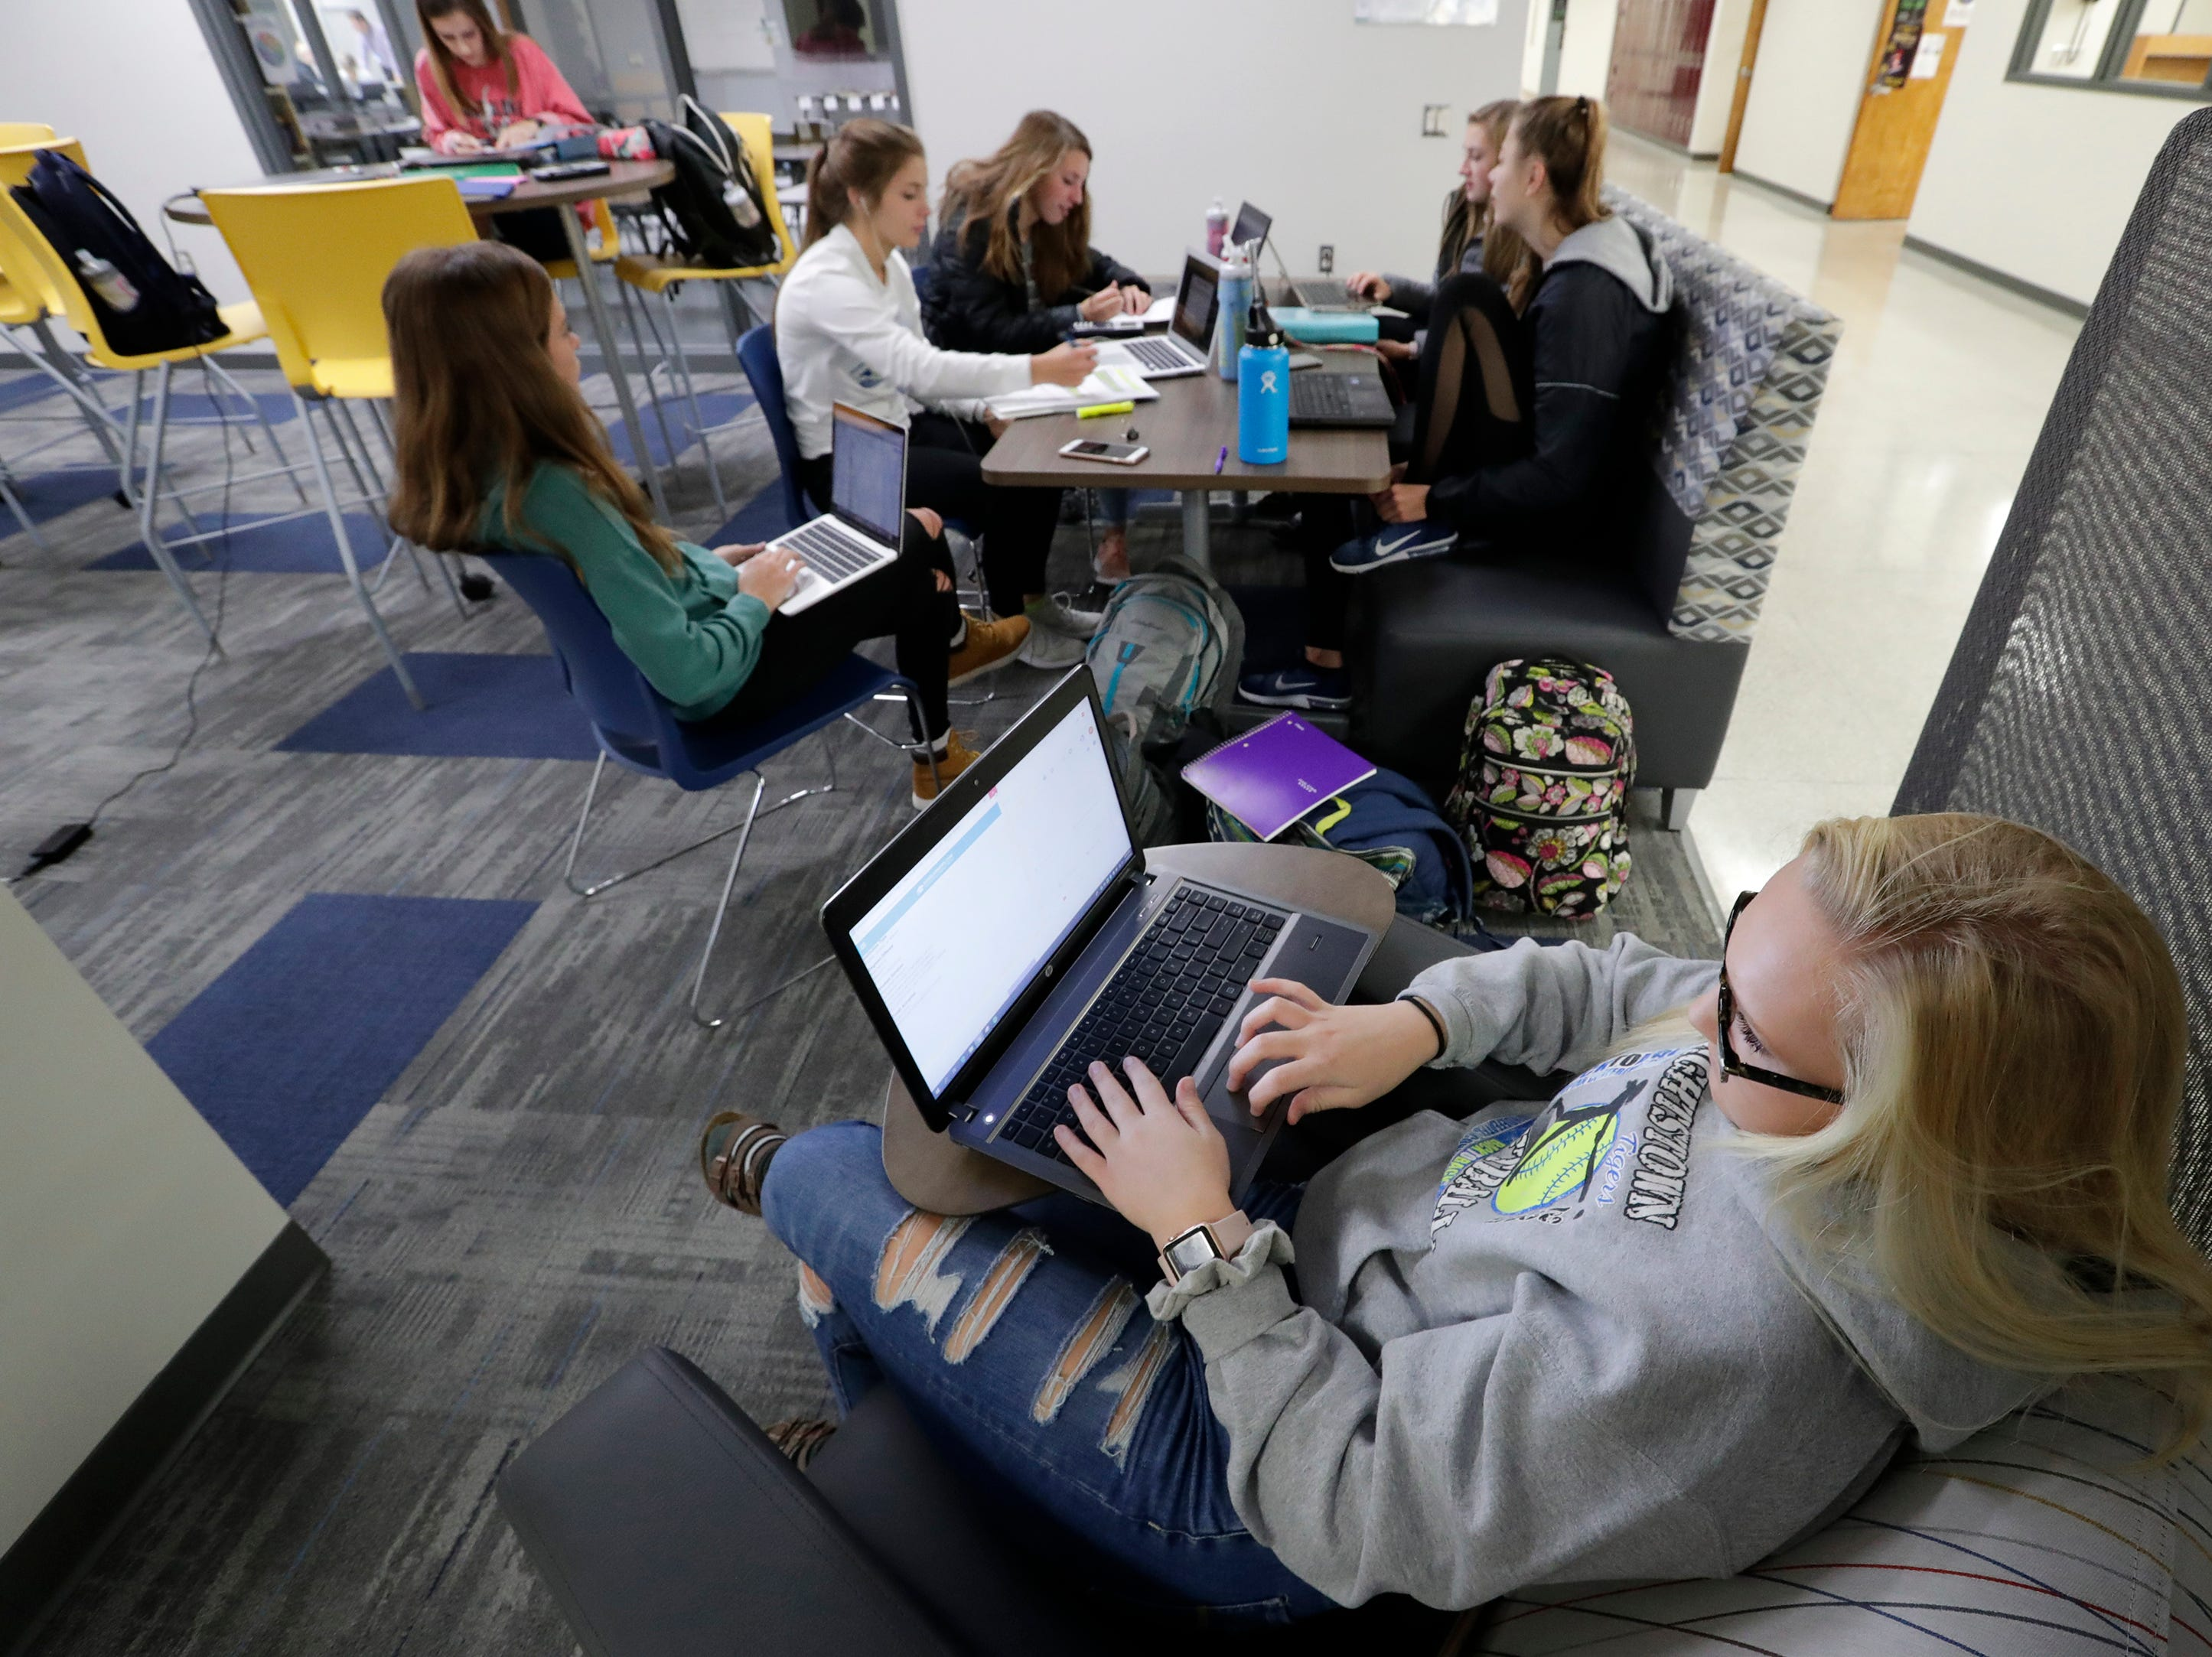 Senior Molly Romenesko does homework in a collaboration area in Little Chute High School Tuesday, November 6, 2018, in Little Chute, Wis. The areas are for students and teachers to work together in small groups in a comfortable space